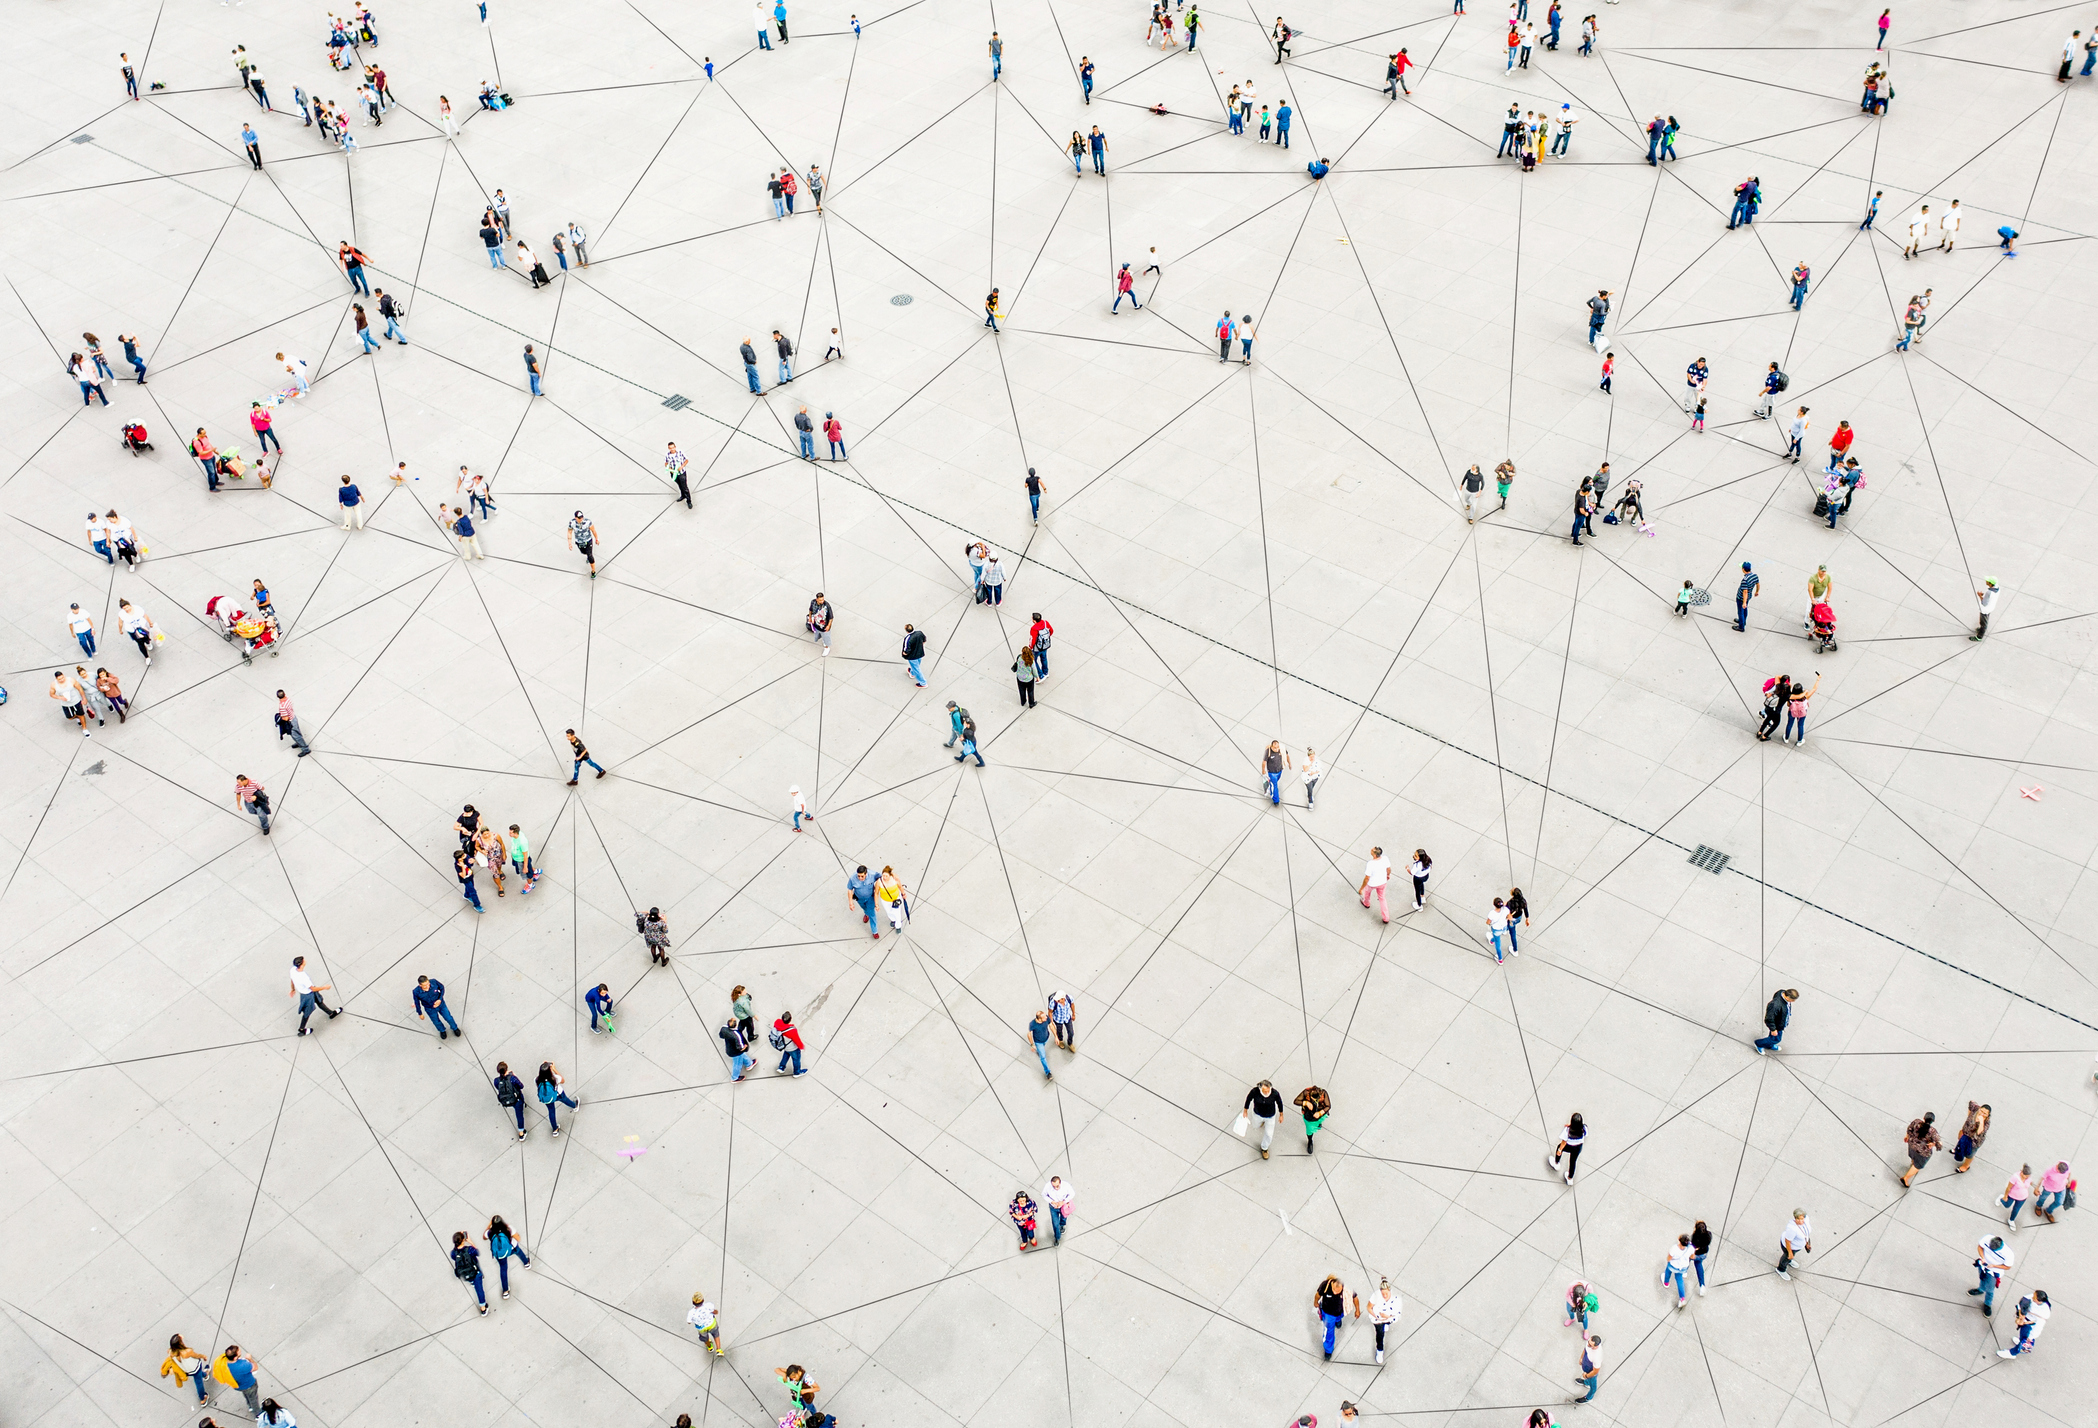 Birds eye view of a sparse crowd of people connected together by lines